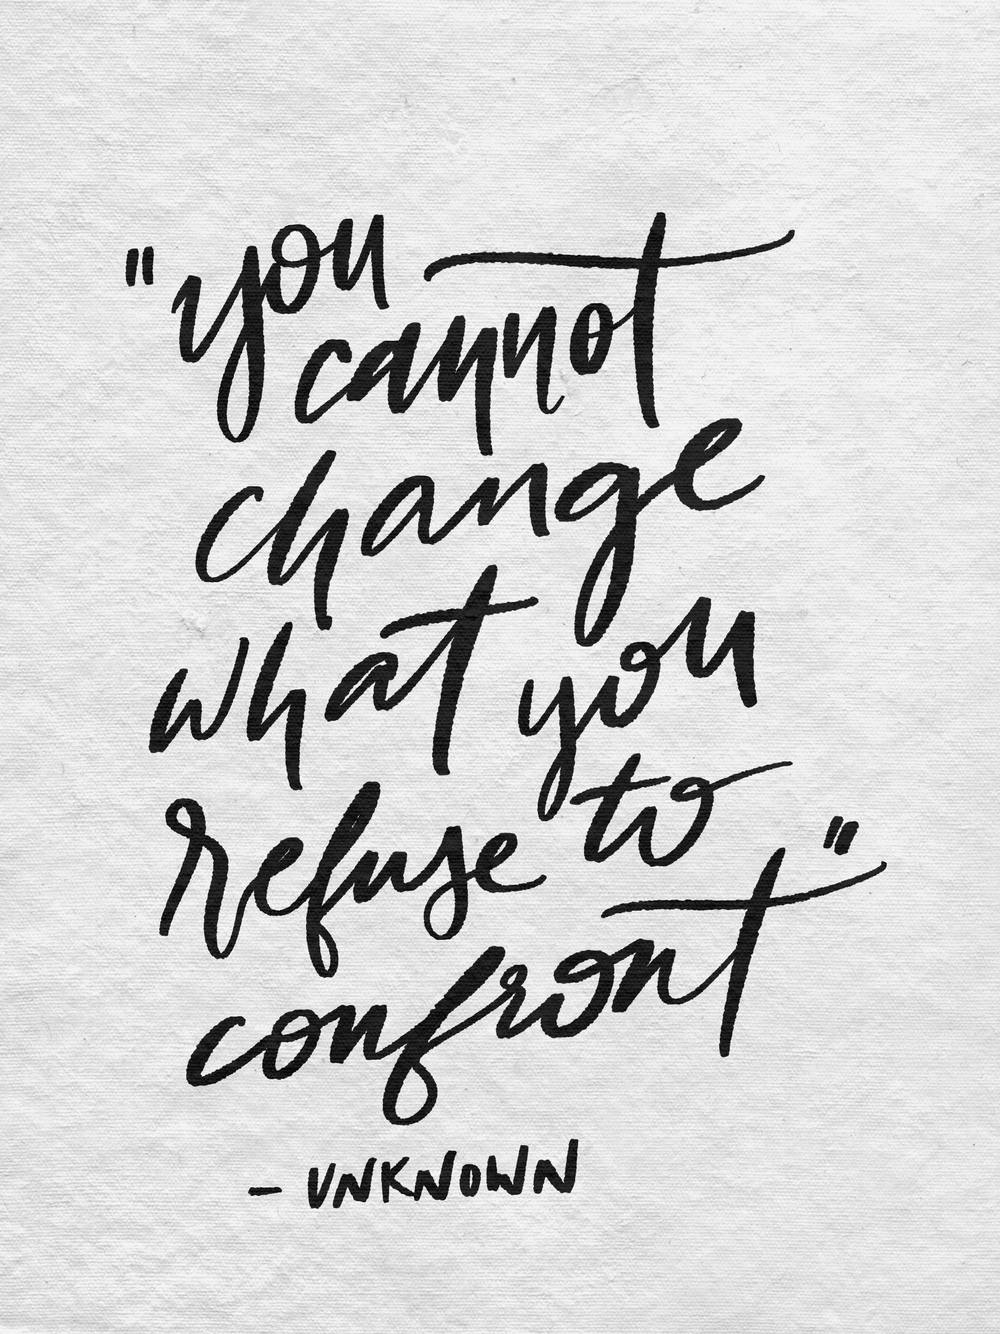 """You cannot change what you refuse to confront"" - Unknown"